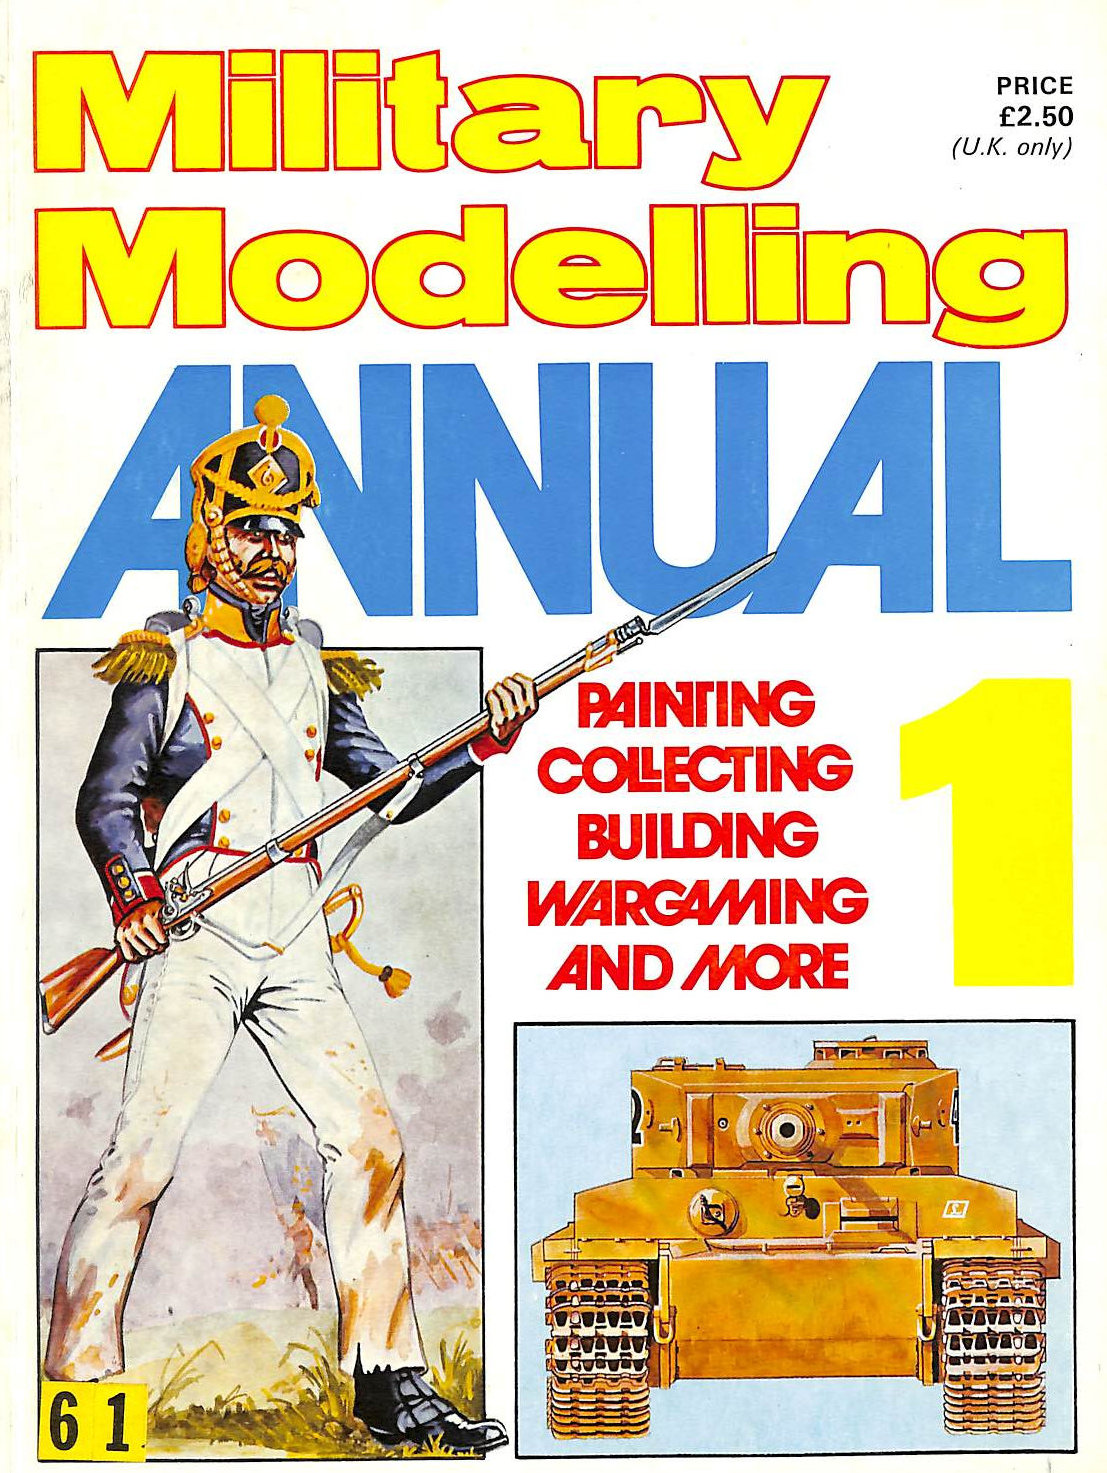 Image for MILITARY MODELLING MAGAZINE ANNUAL 1 - 1974